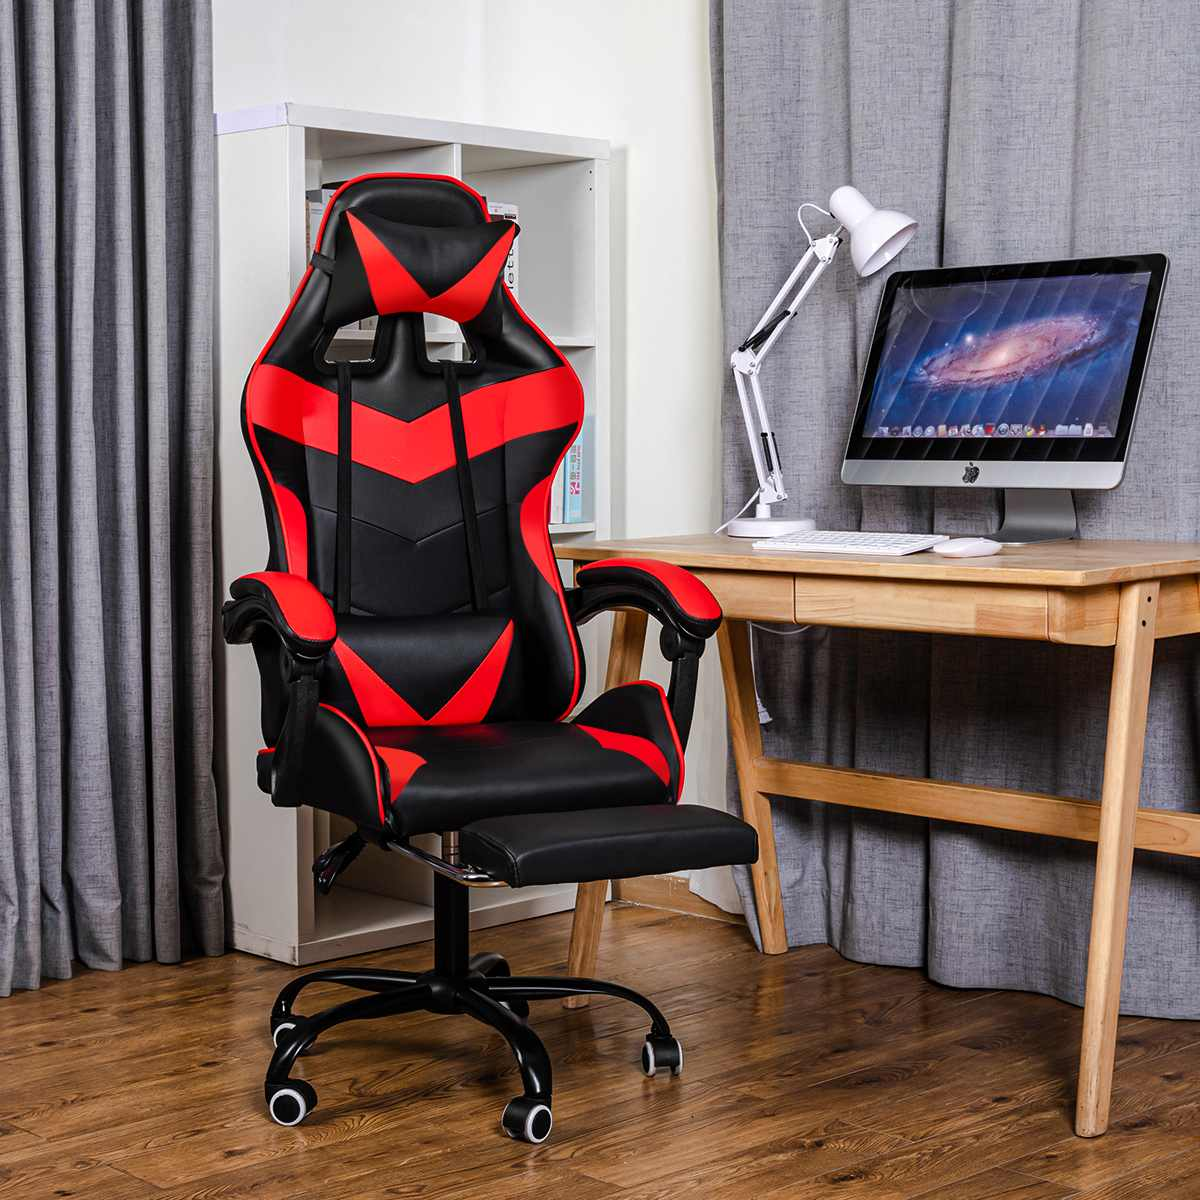 H077d44974f0741d5a1d8c1935da84e06R - Office Chair Gaming Computer Chair Racing Reclining High Back Computer Game Office Chair Ergonomic Desk Chairs Chaise Gaming